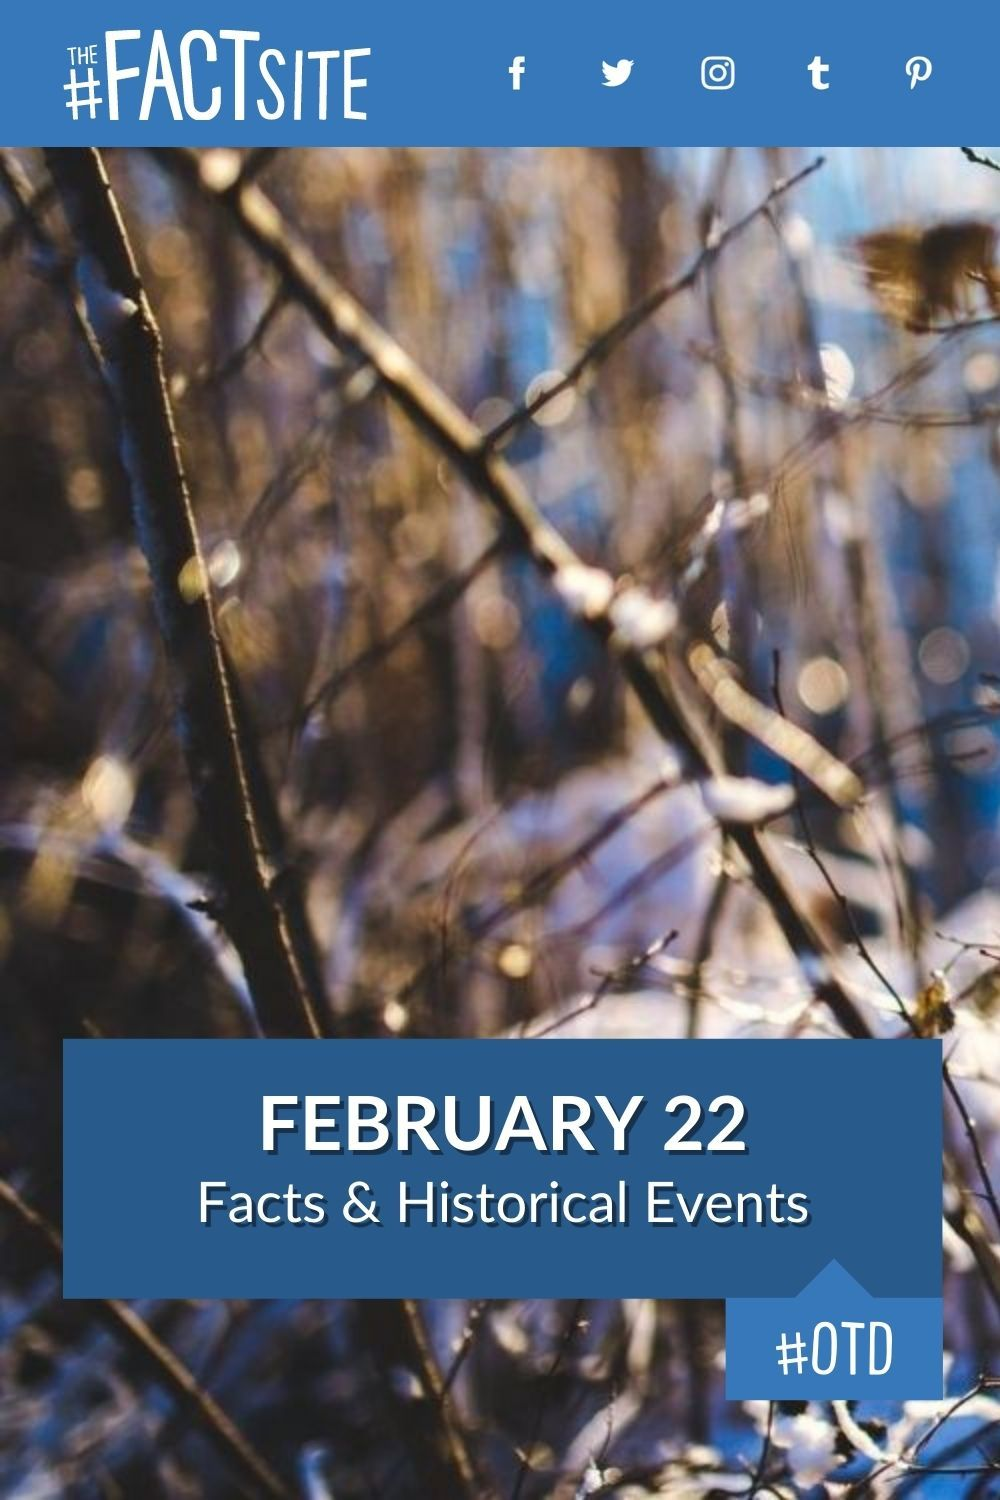 Facts & Historic Events That Happened on February 22